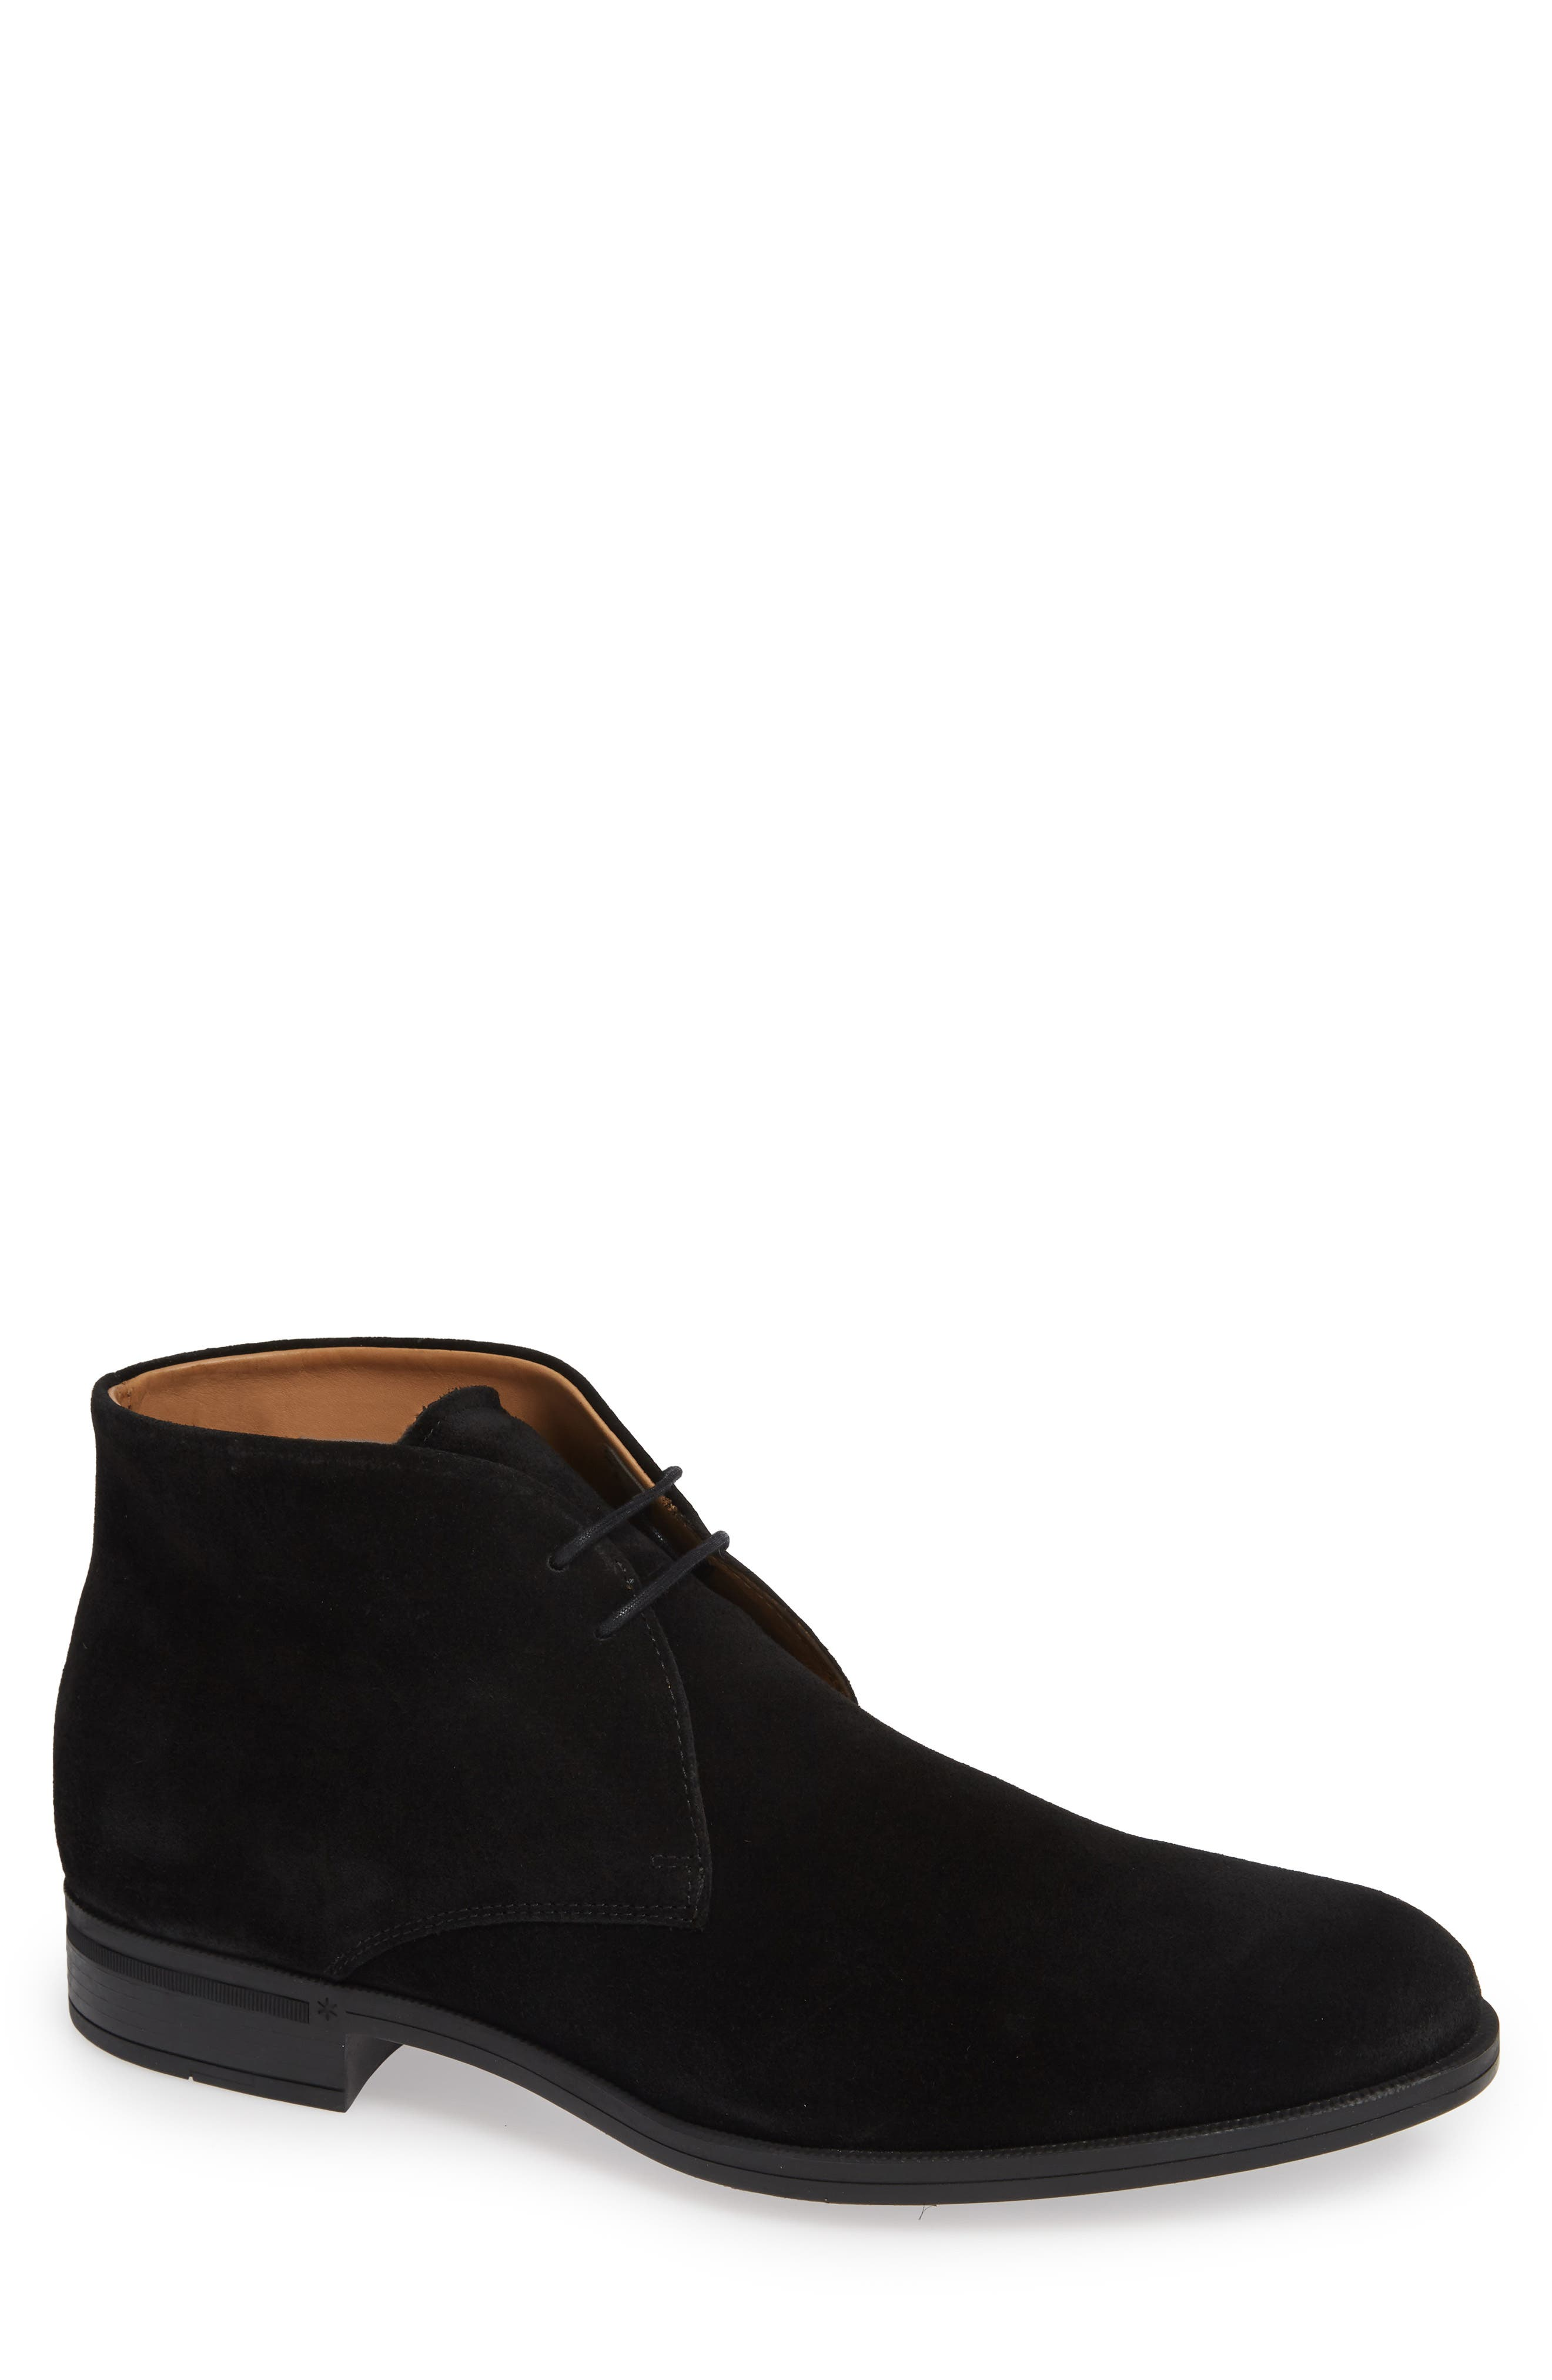 VINCE CAMUTO, Iden Chukka Boot, Main thumbnail 1, color, BLACK SUEDE